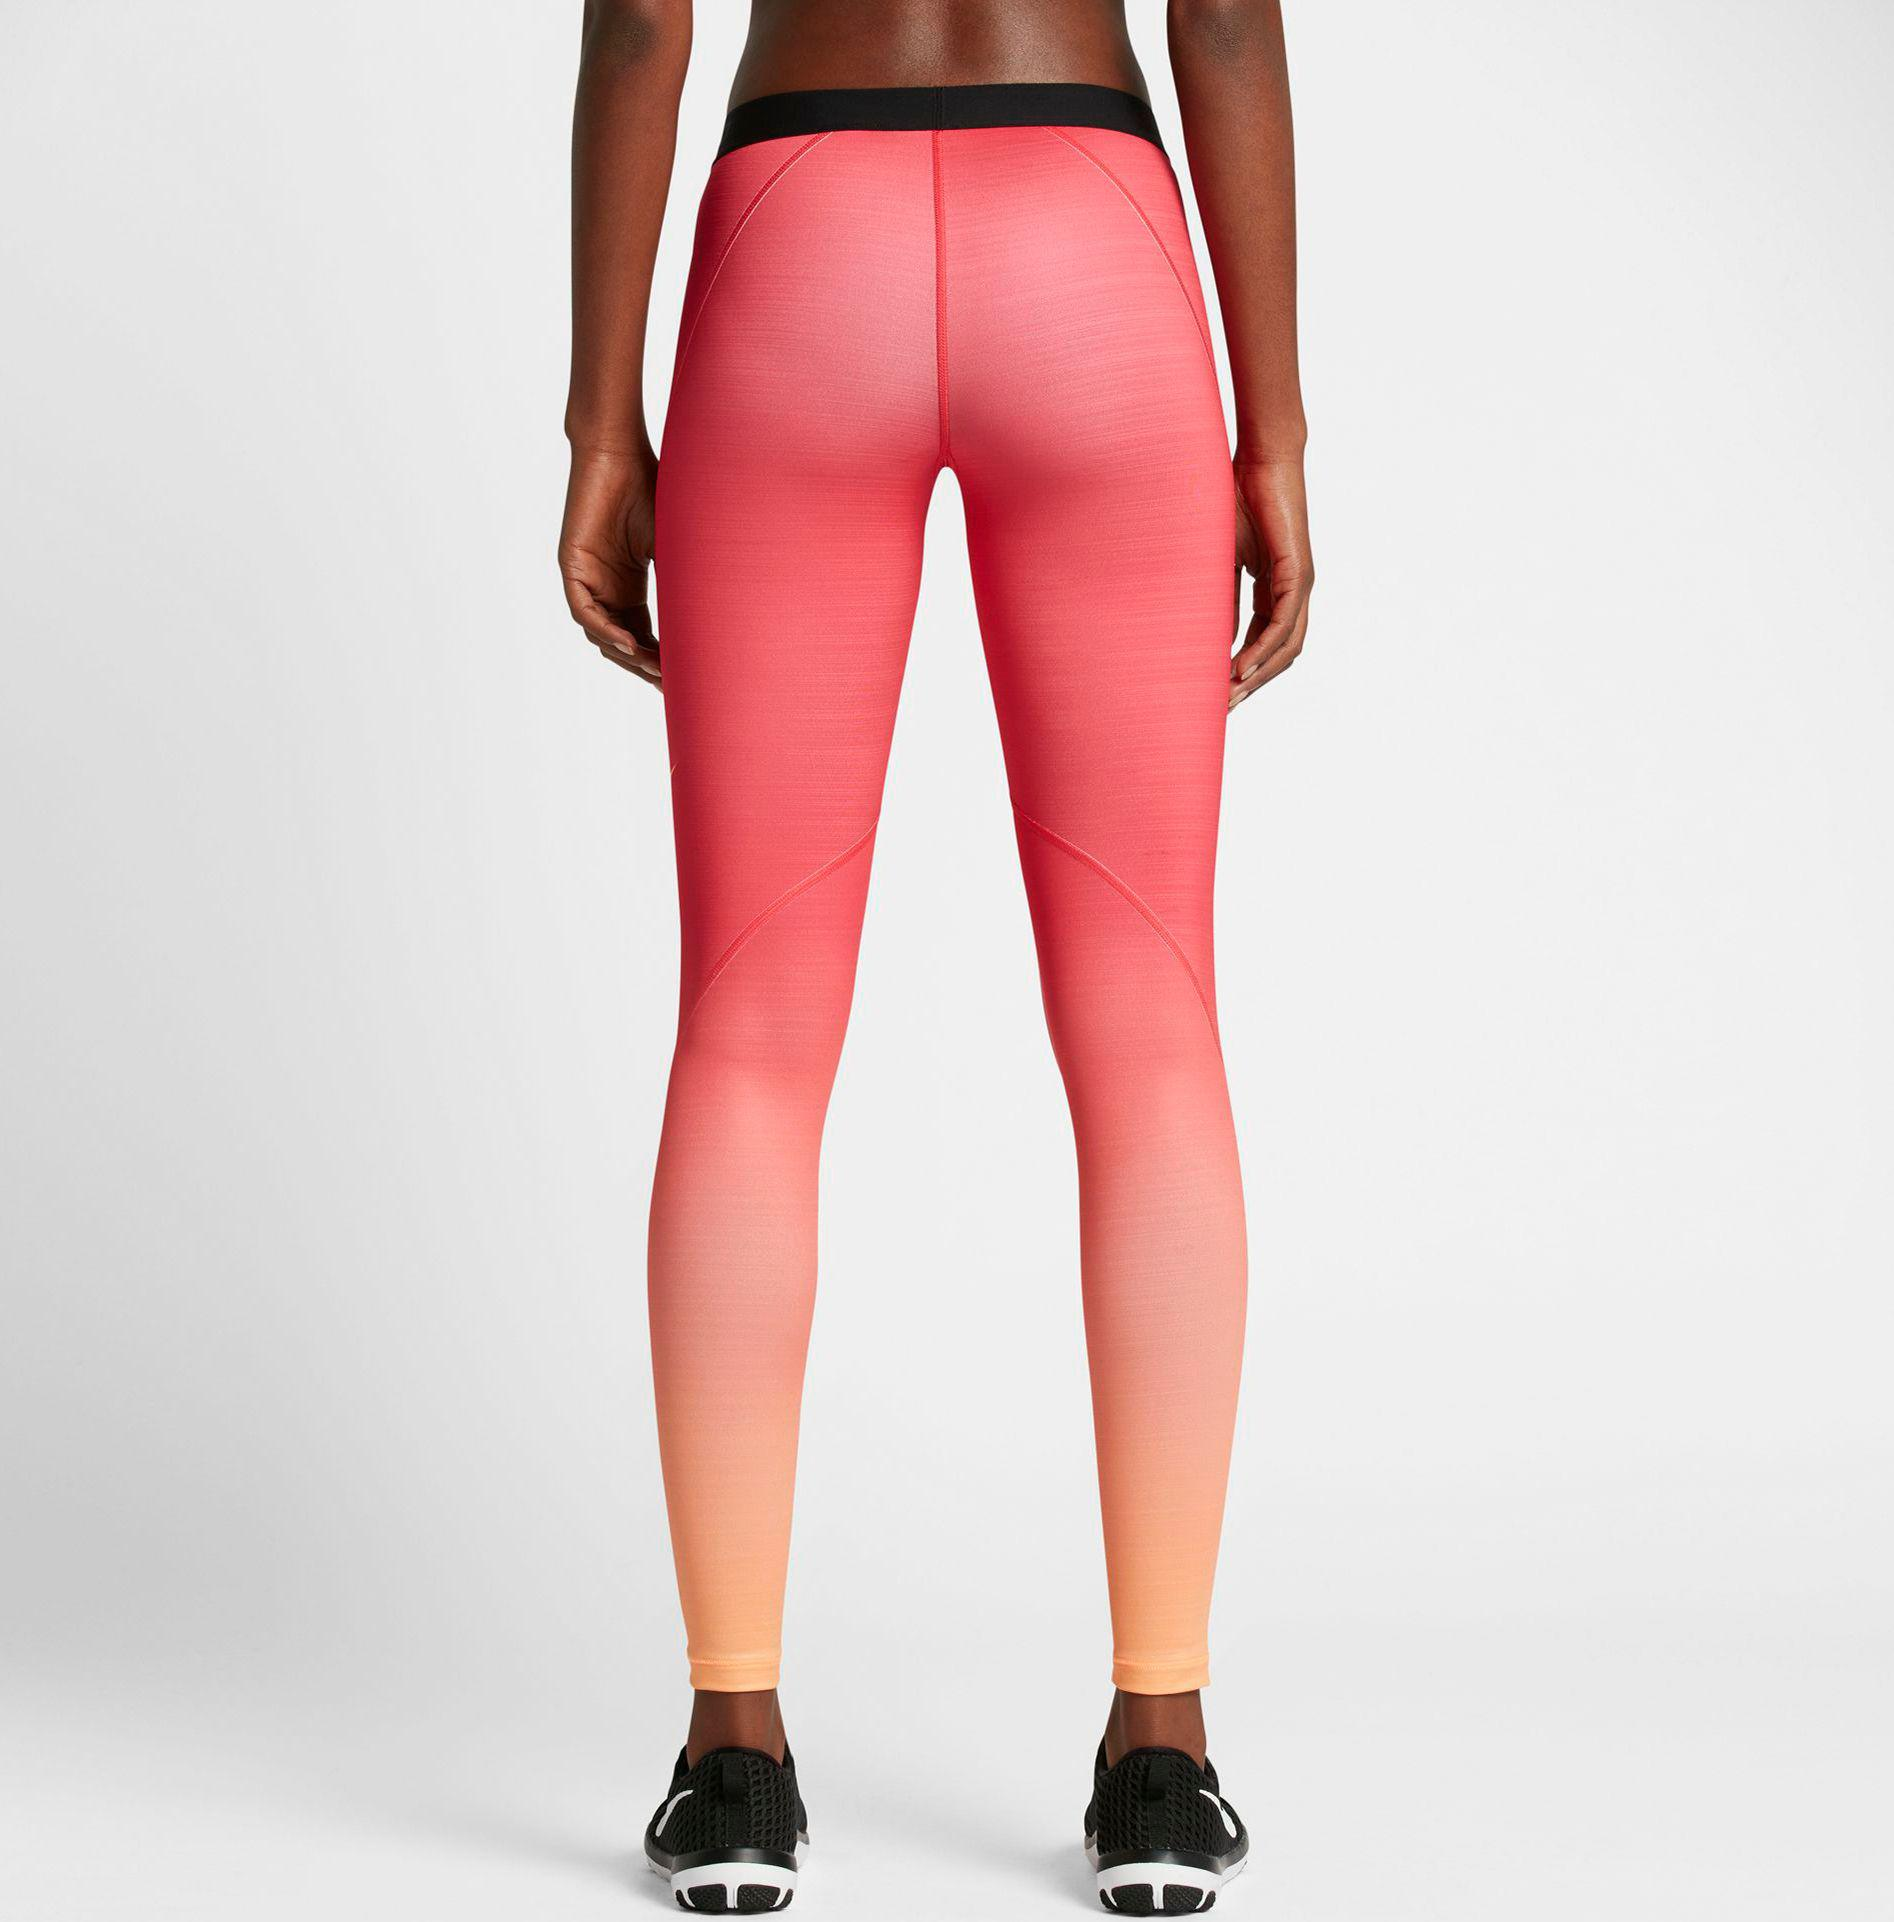 8644bca834 Nike Pro Hyperwarm Fade Printed Tights in Red - Lyst